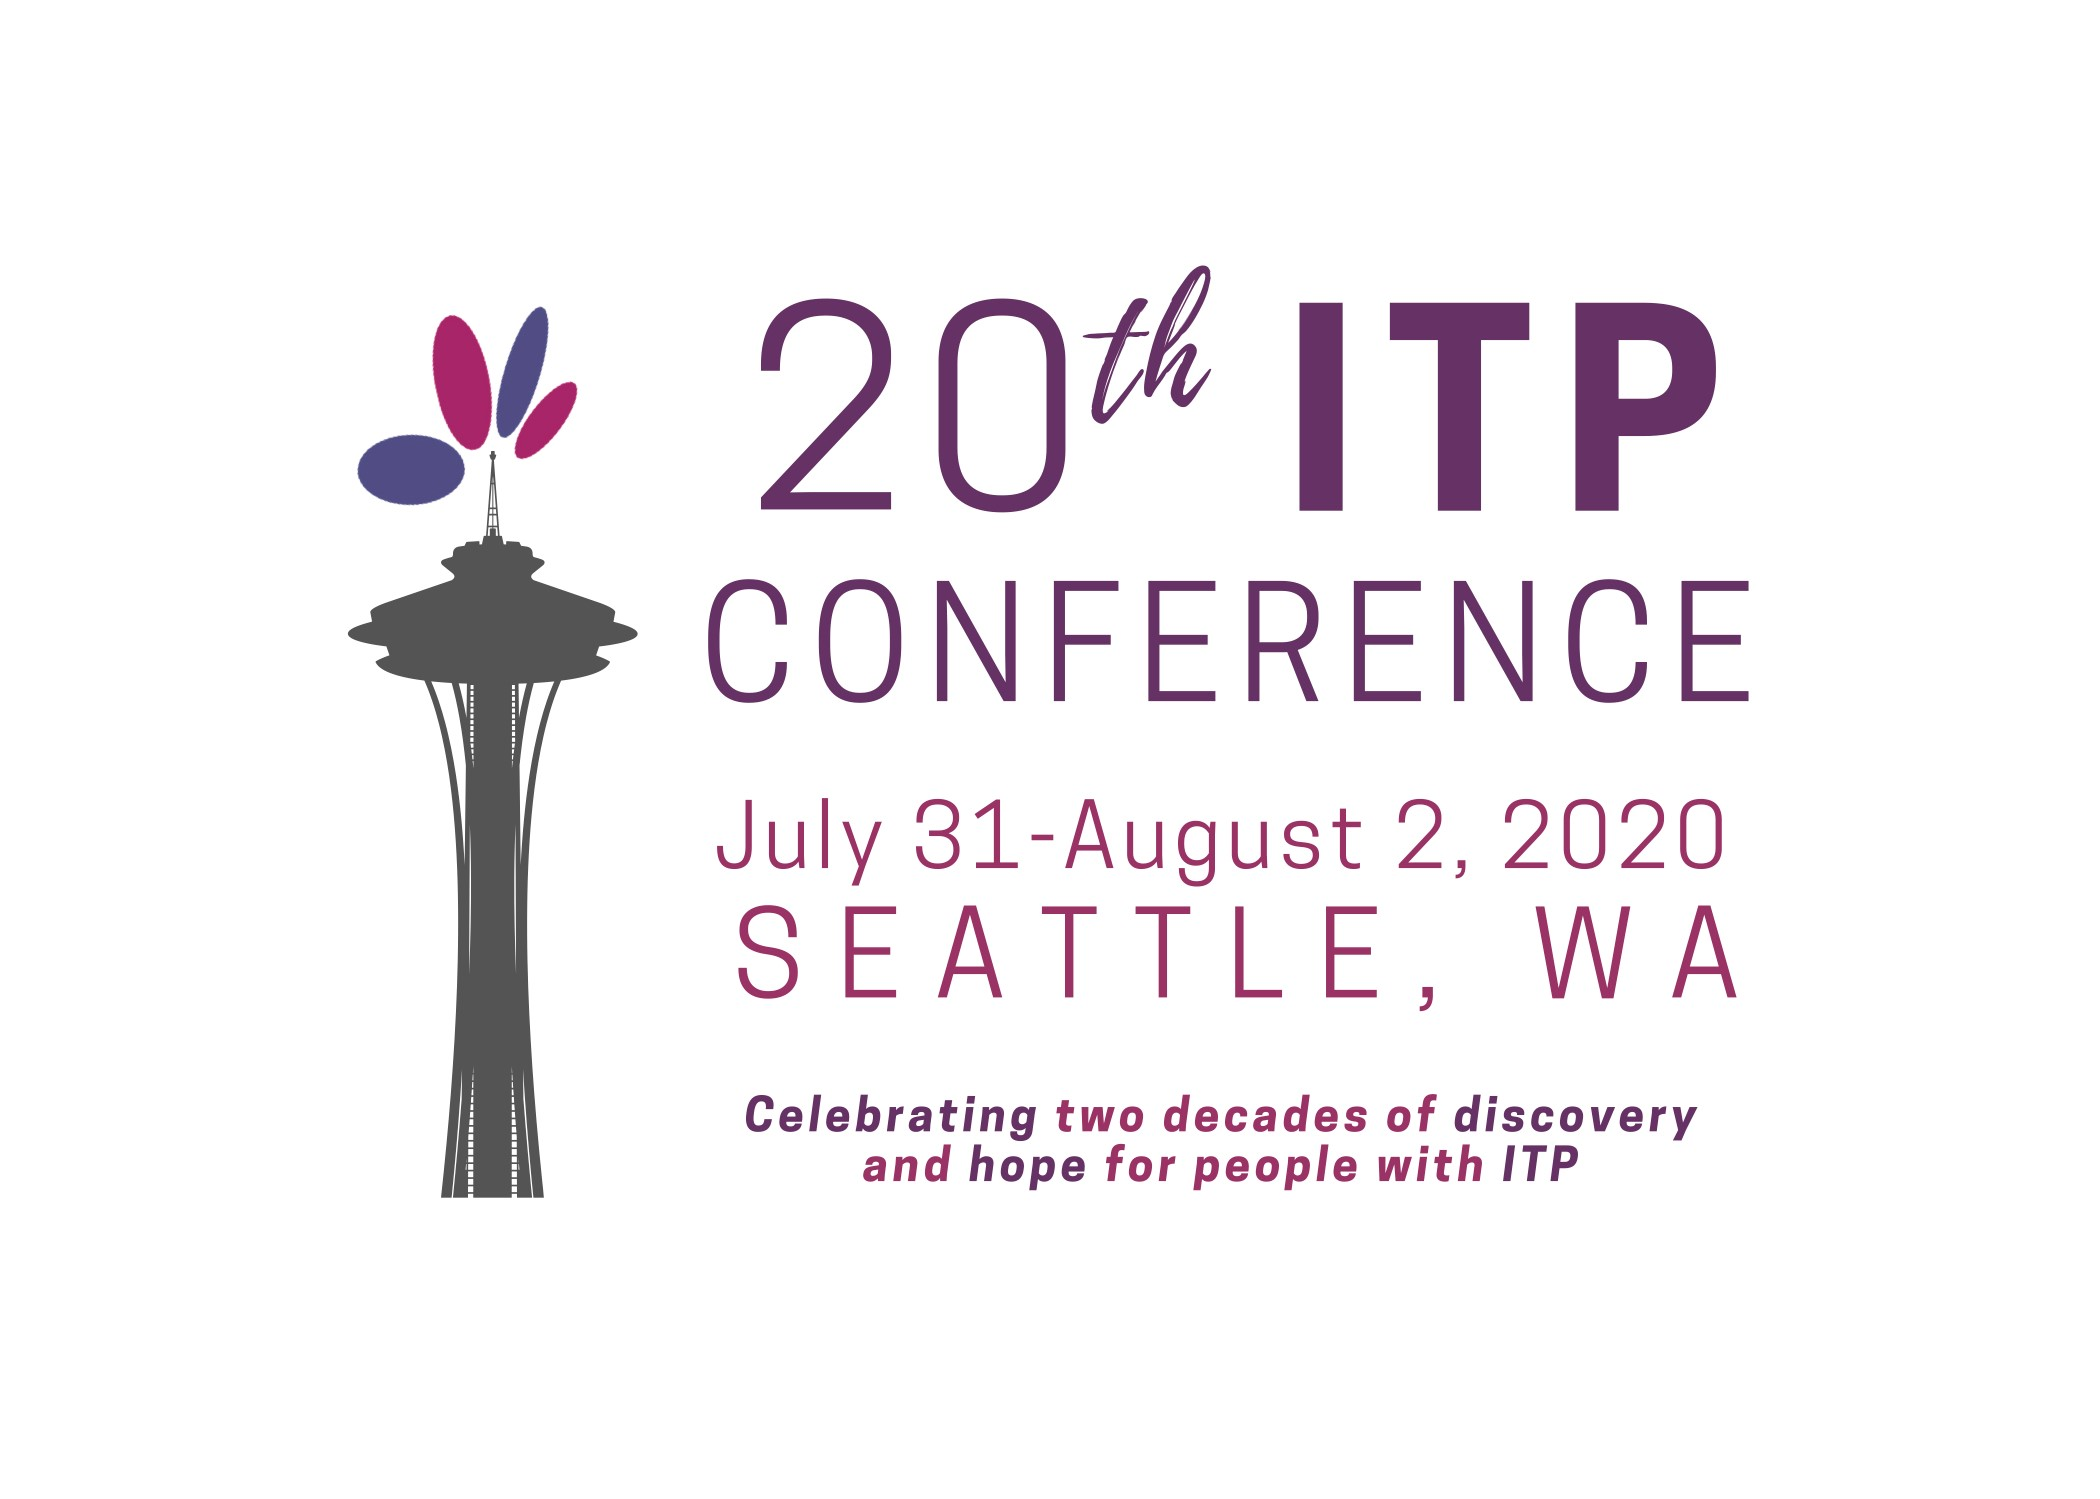 ITP Conference 2020 logo